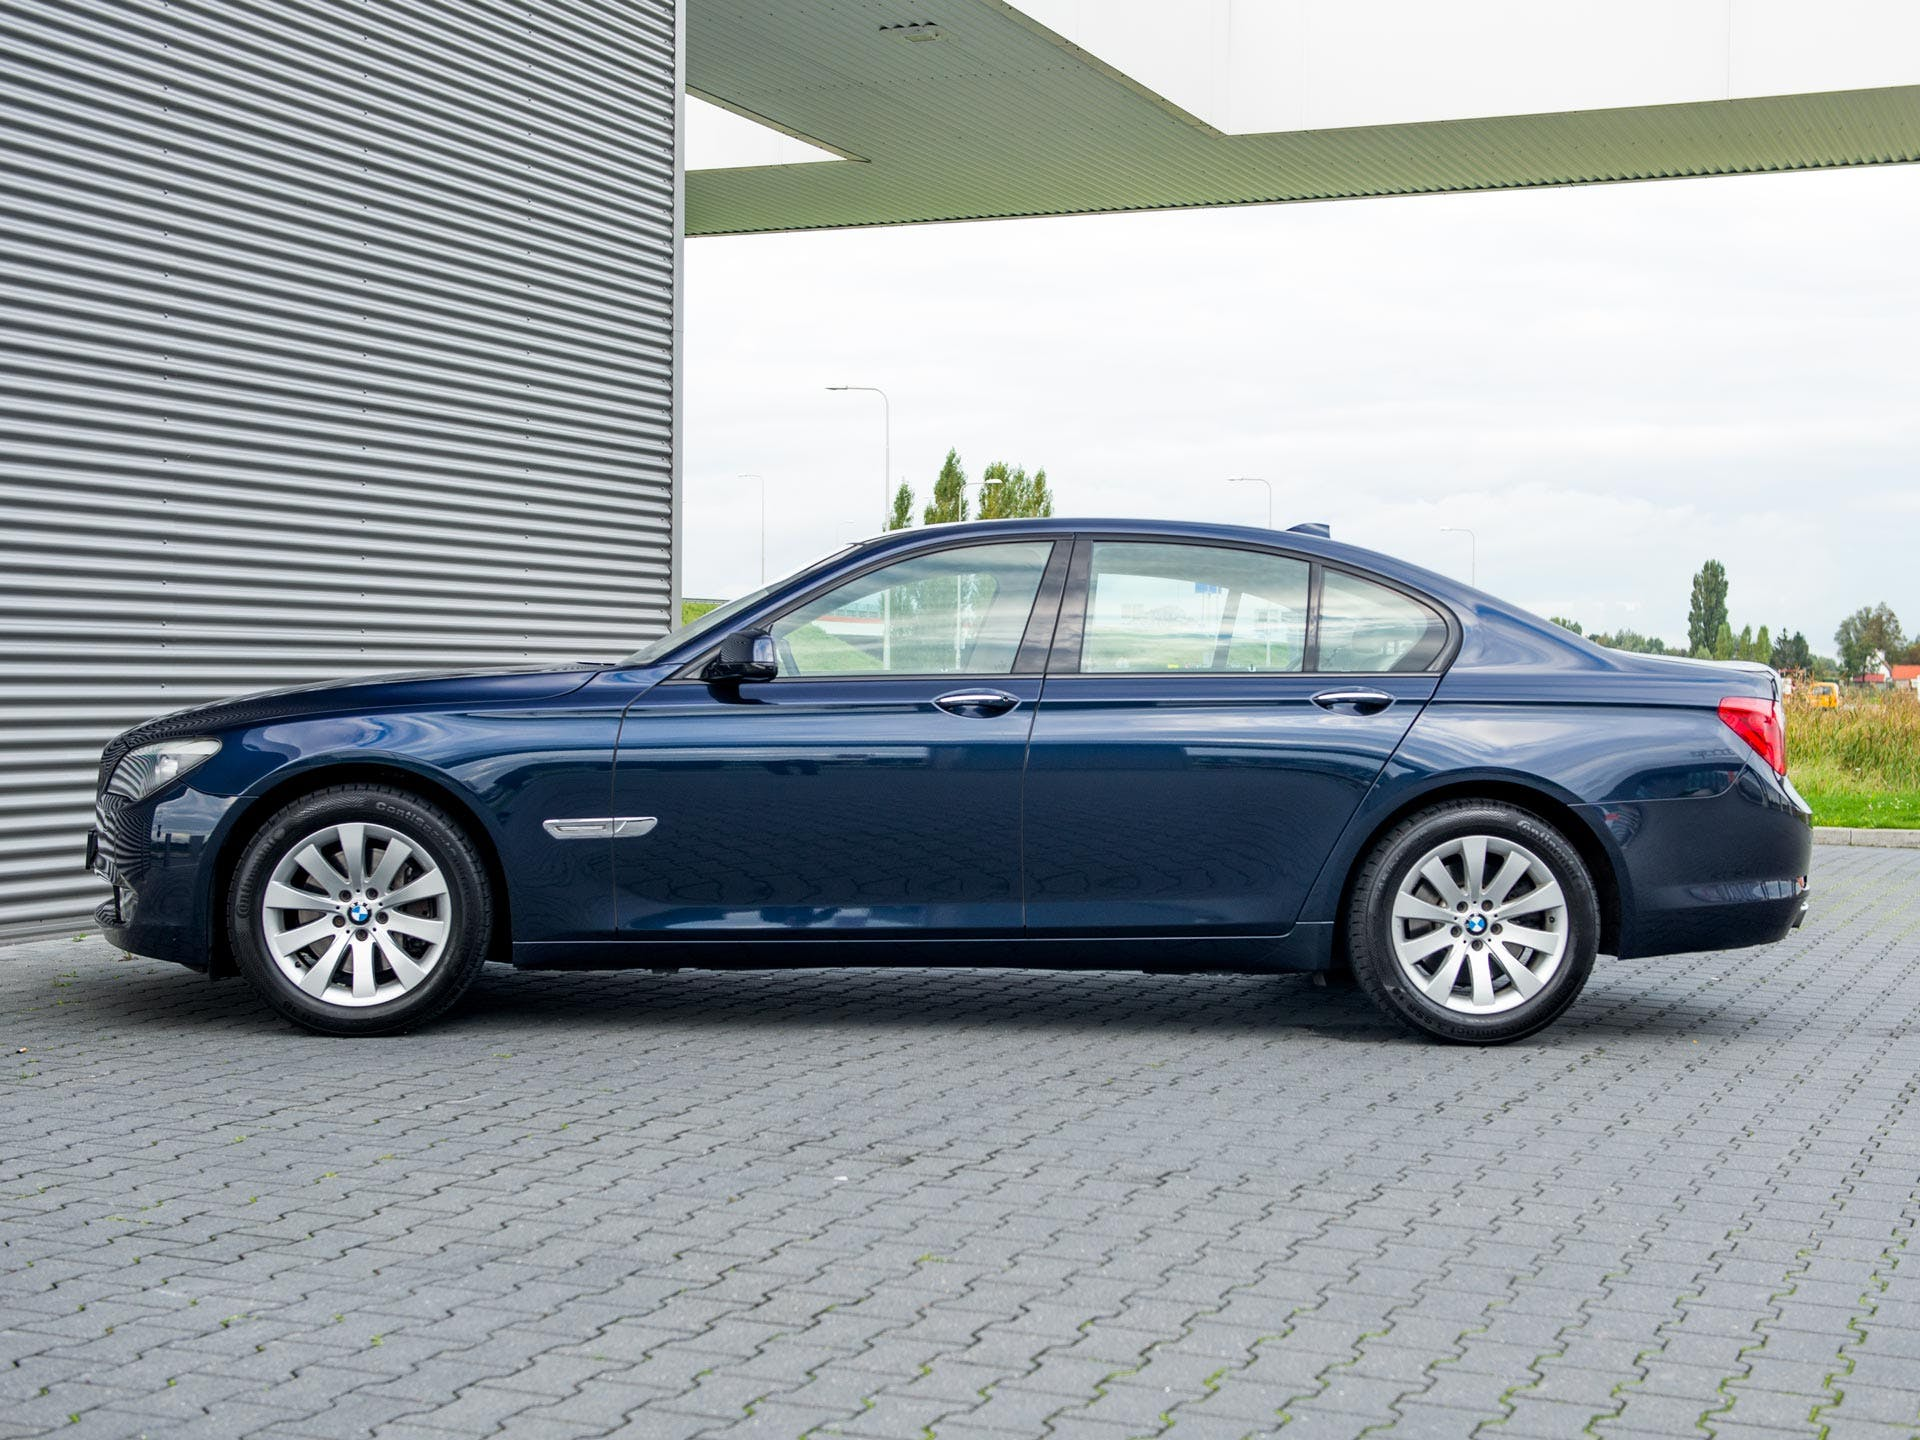 Tweedehands BMW 7 Serie 740i 2011 occasion